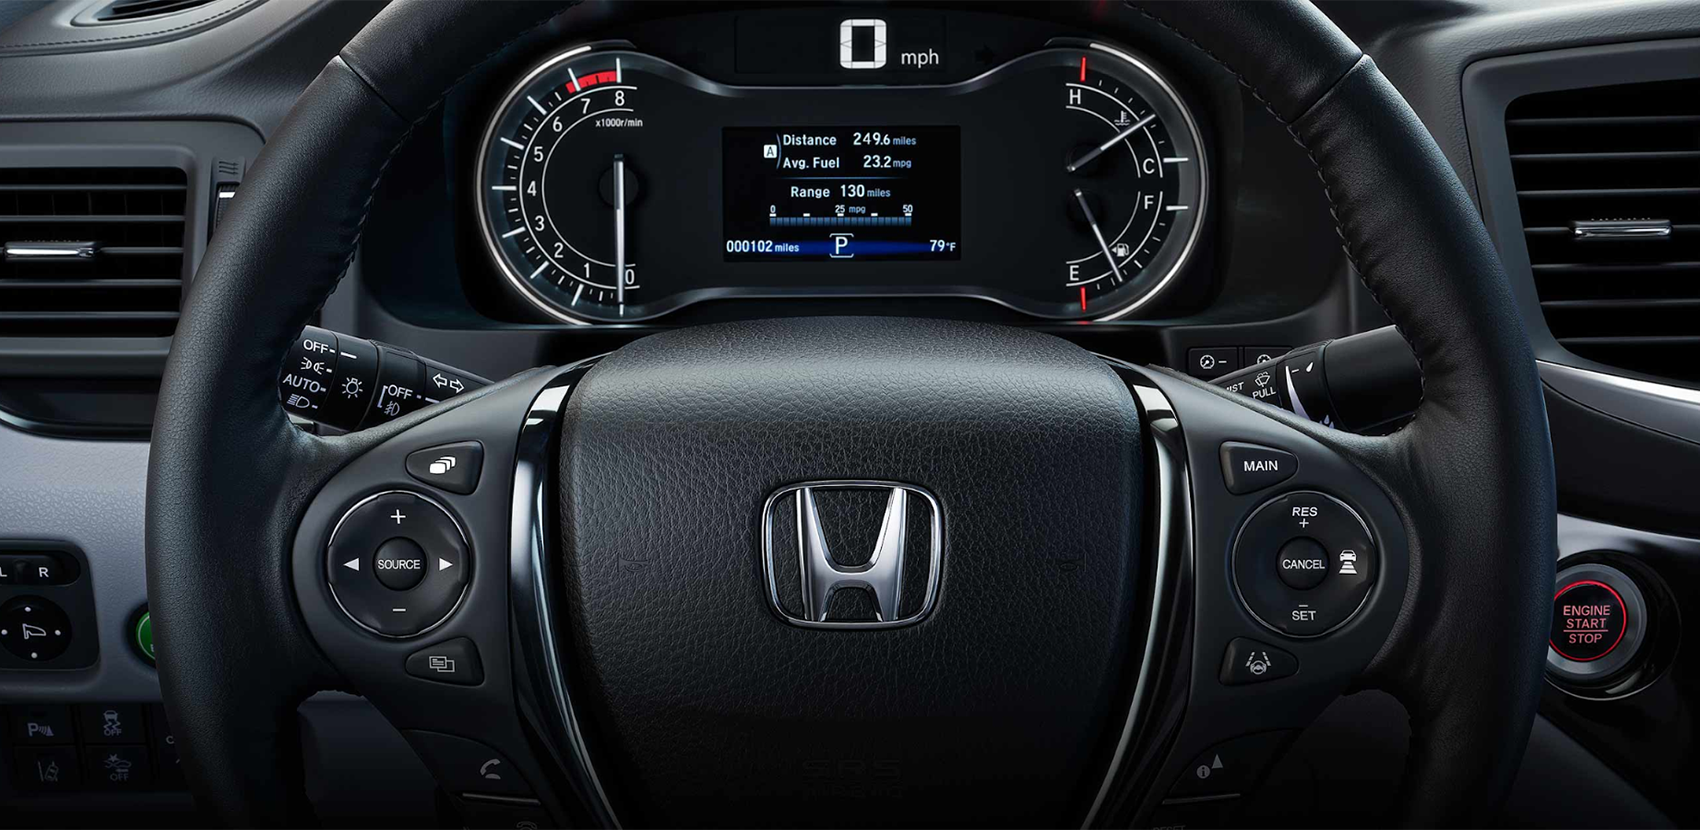 Honda Accord Maintenance Codes >> Honda Maintenance Minder Codes Honda East